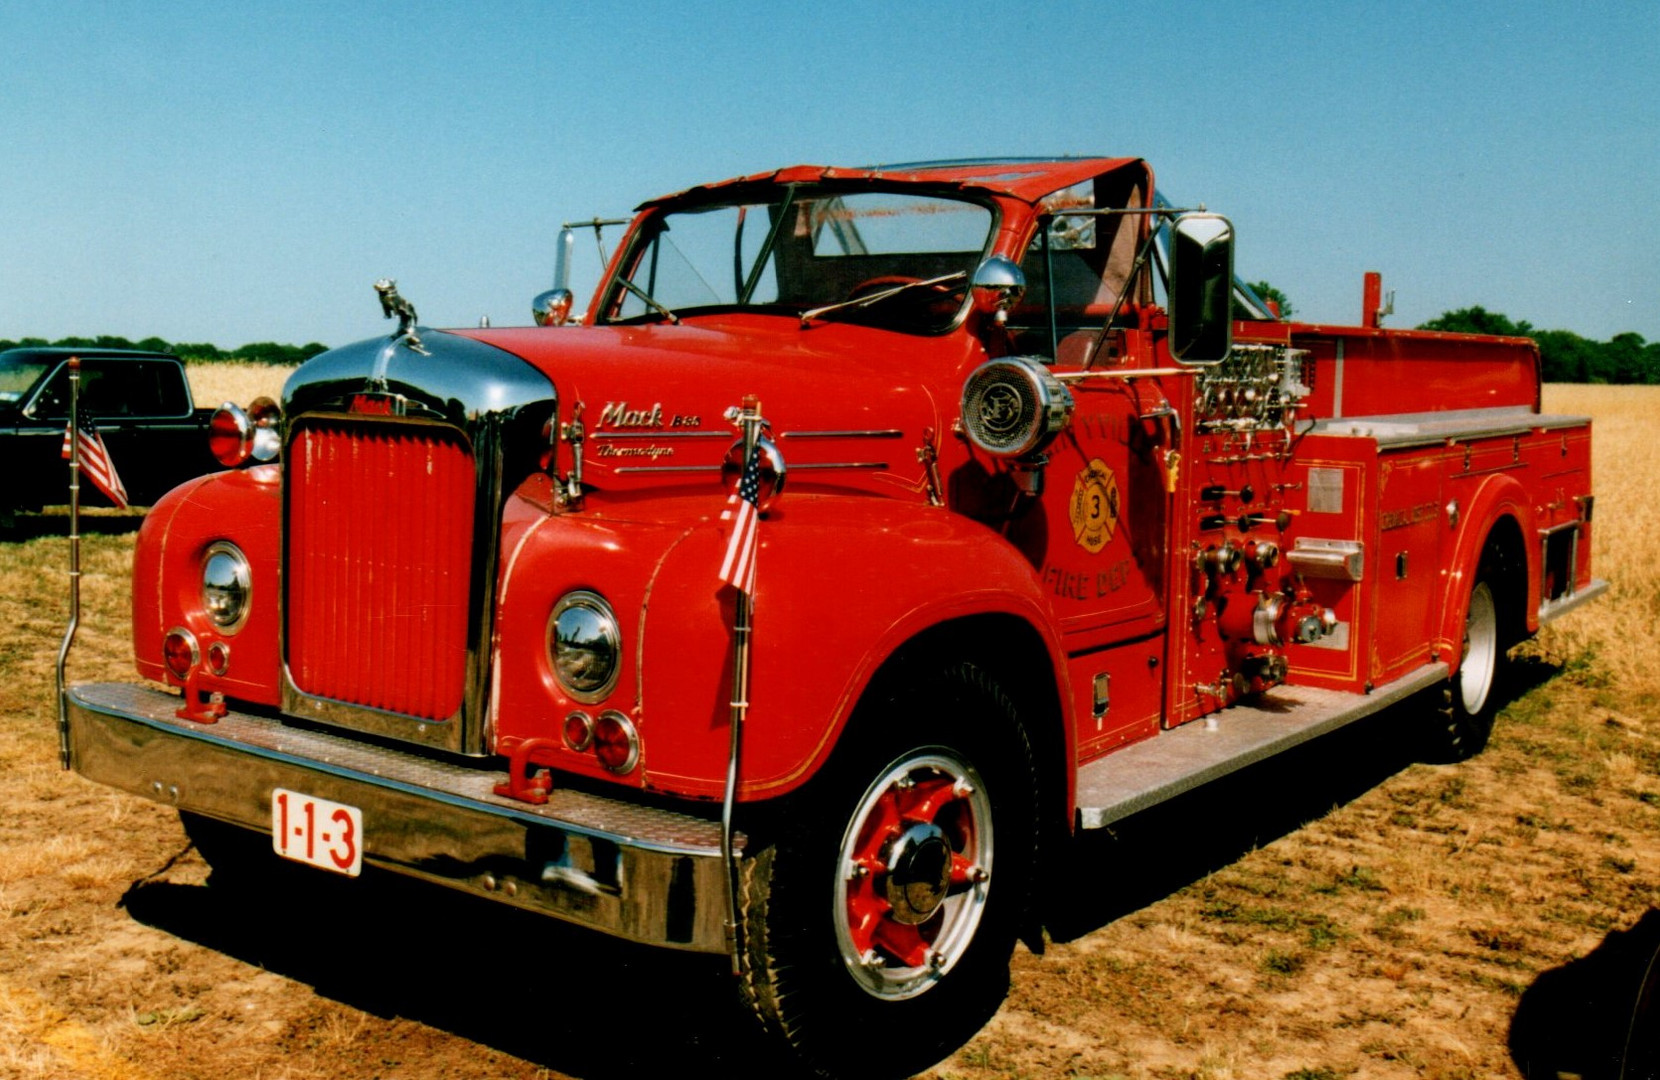 1957 Mack B-85 pumper - Chris McGrath